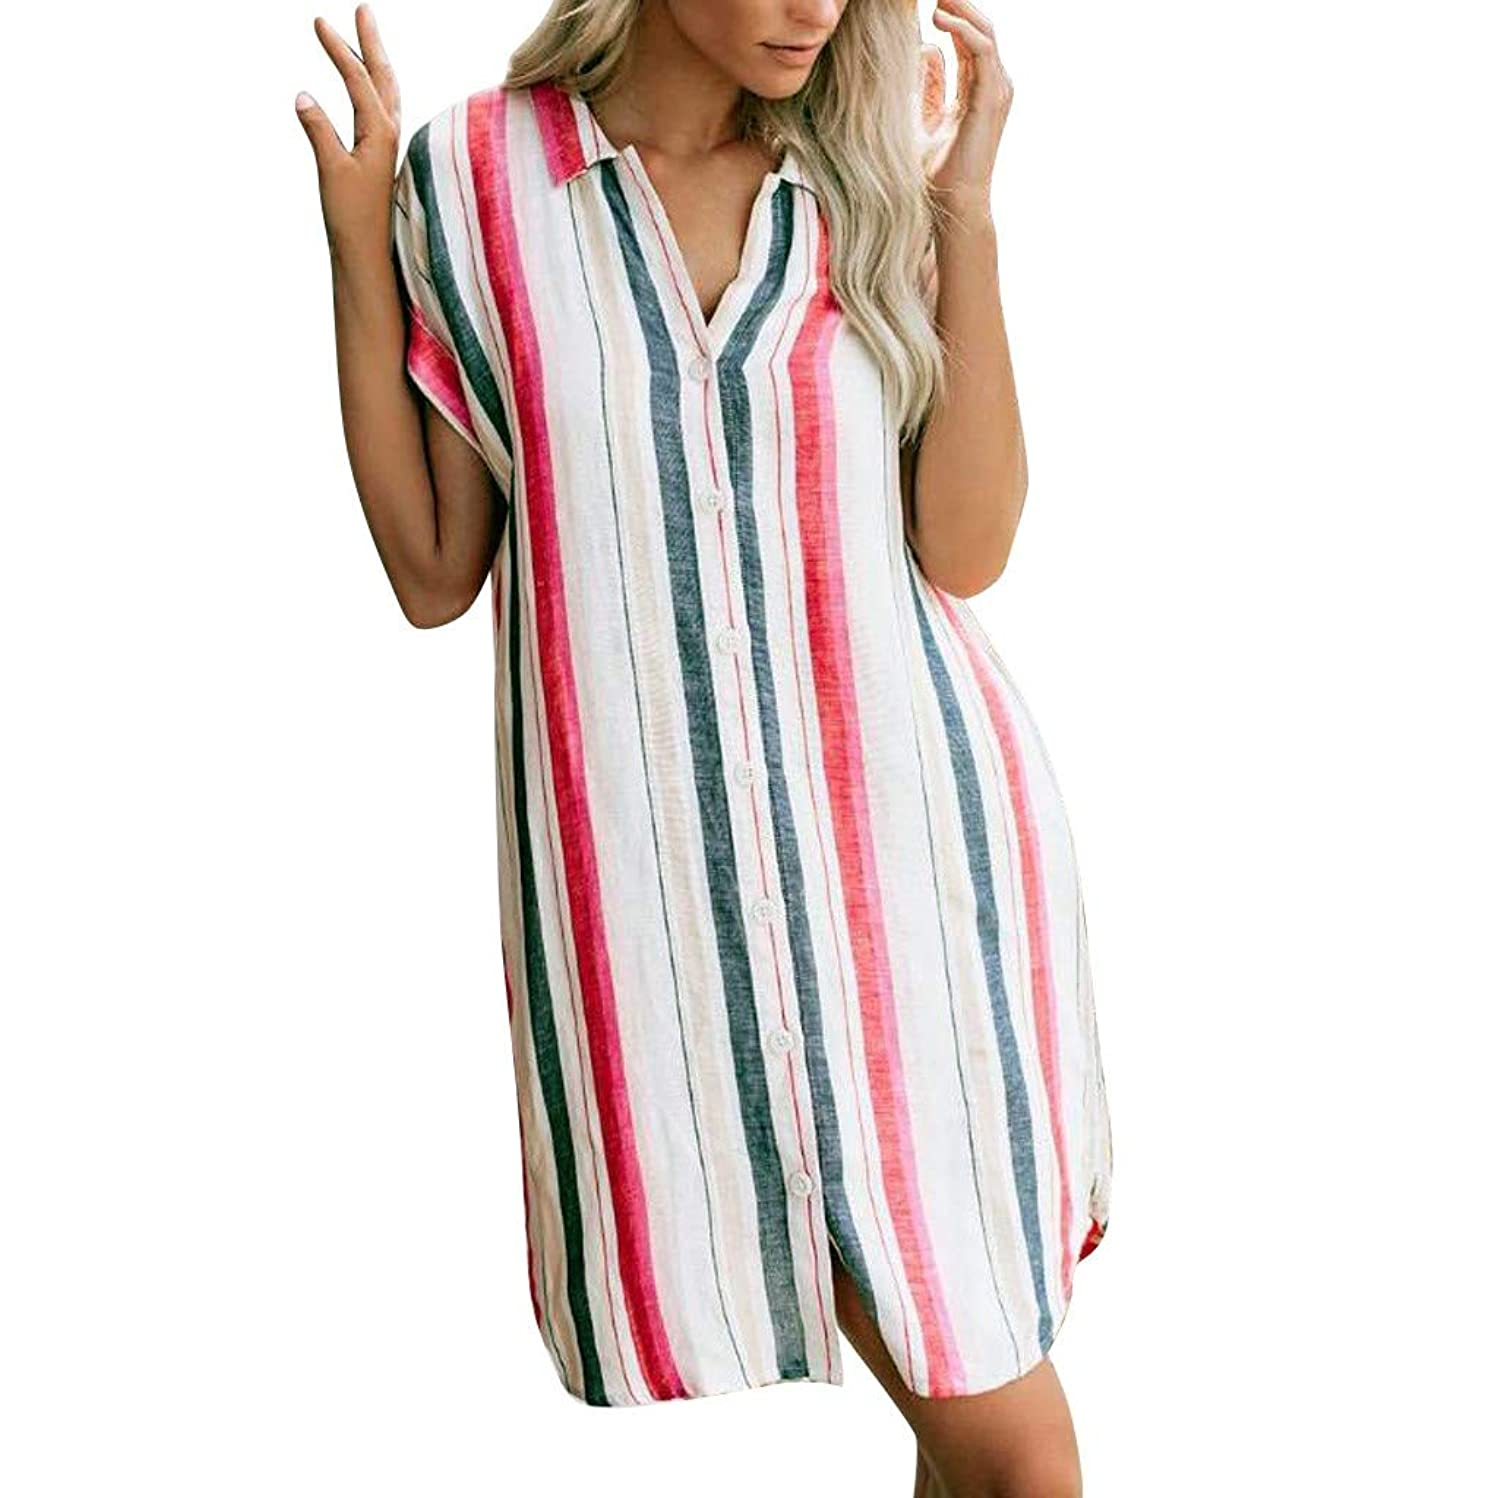 Women's Striped Short Sleeve T-Shirt Dress V Neck Button Down Swing Casual Tunic Tops Midi Dress